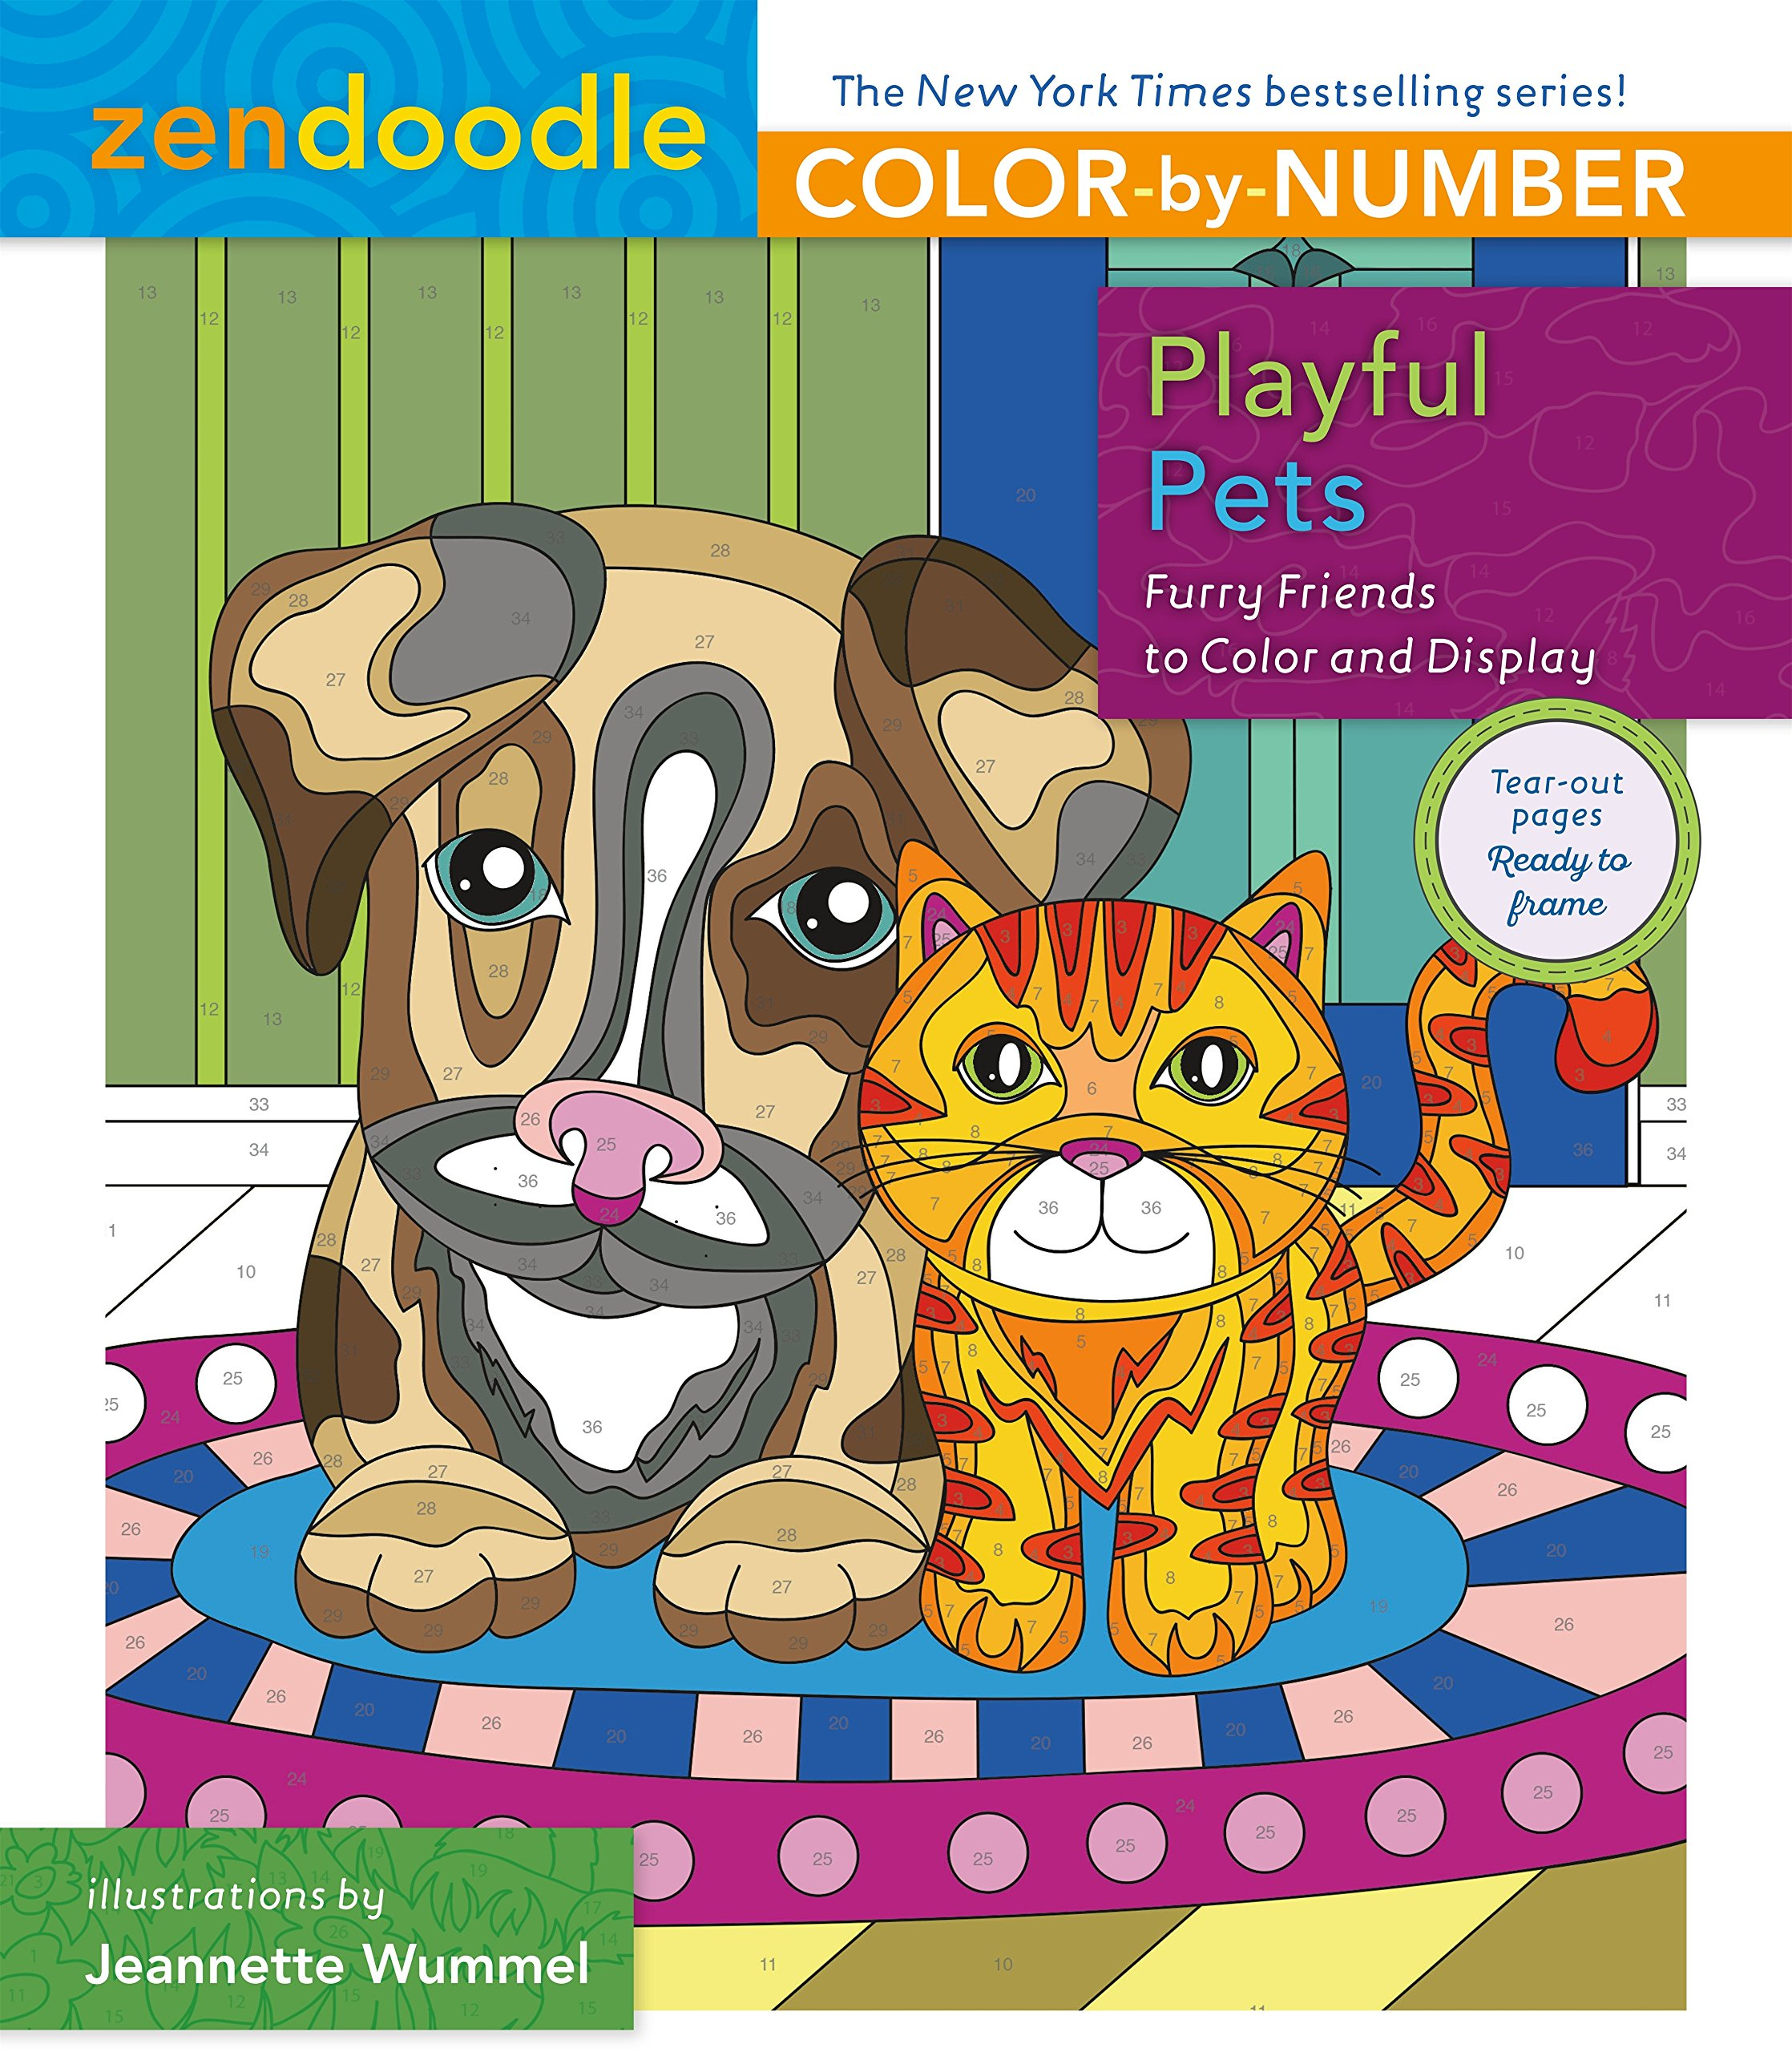 Zendoodle Color Number Playful Friends product image